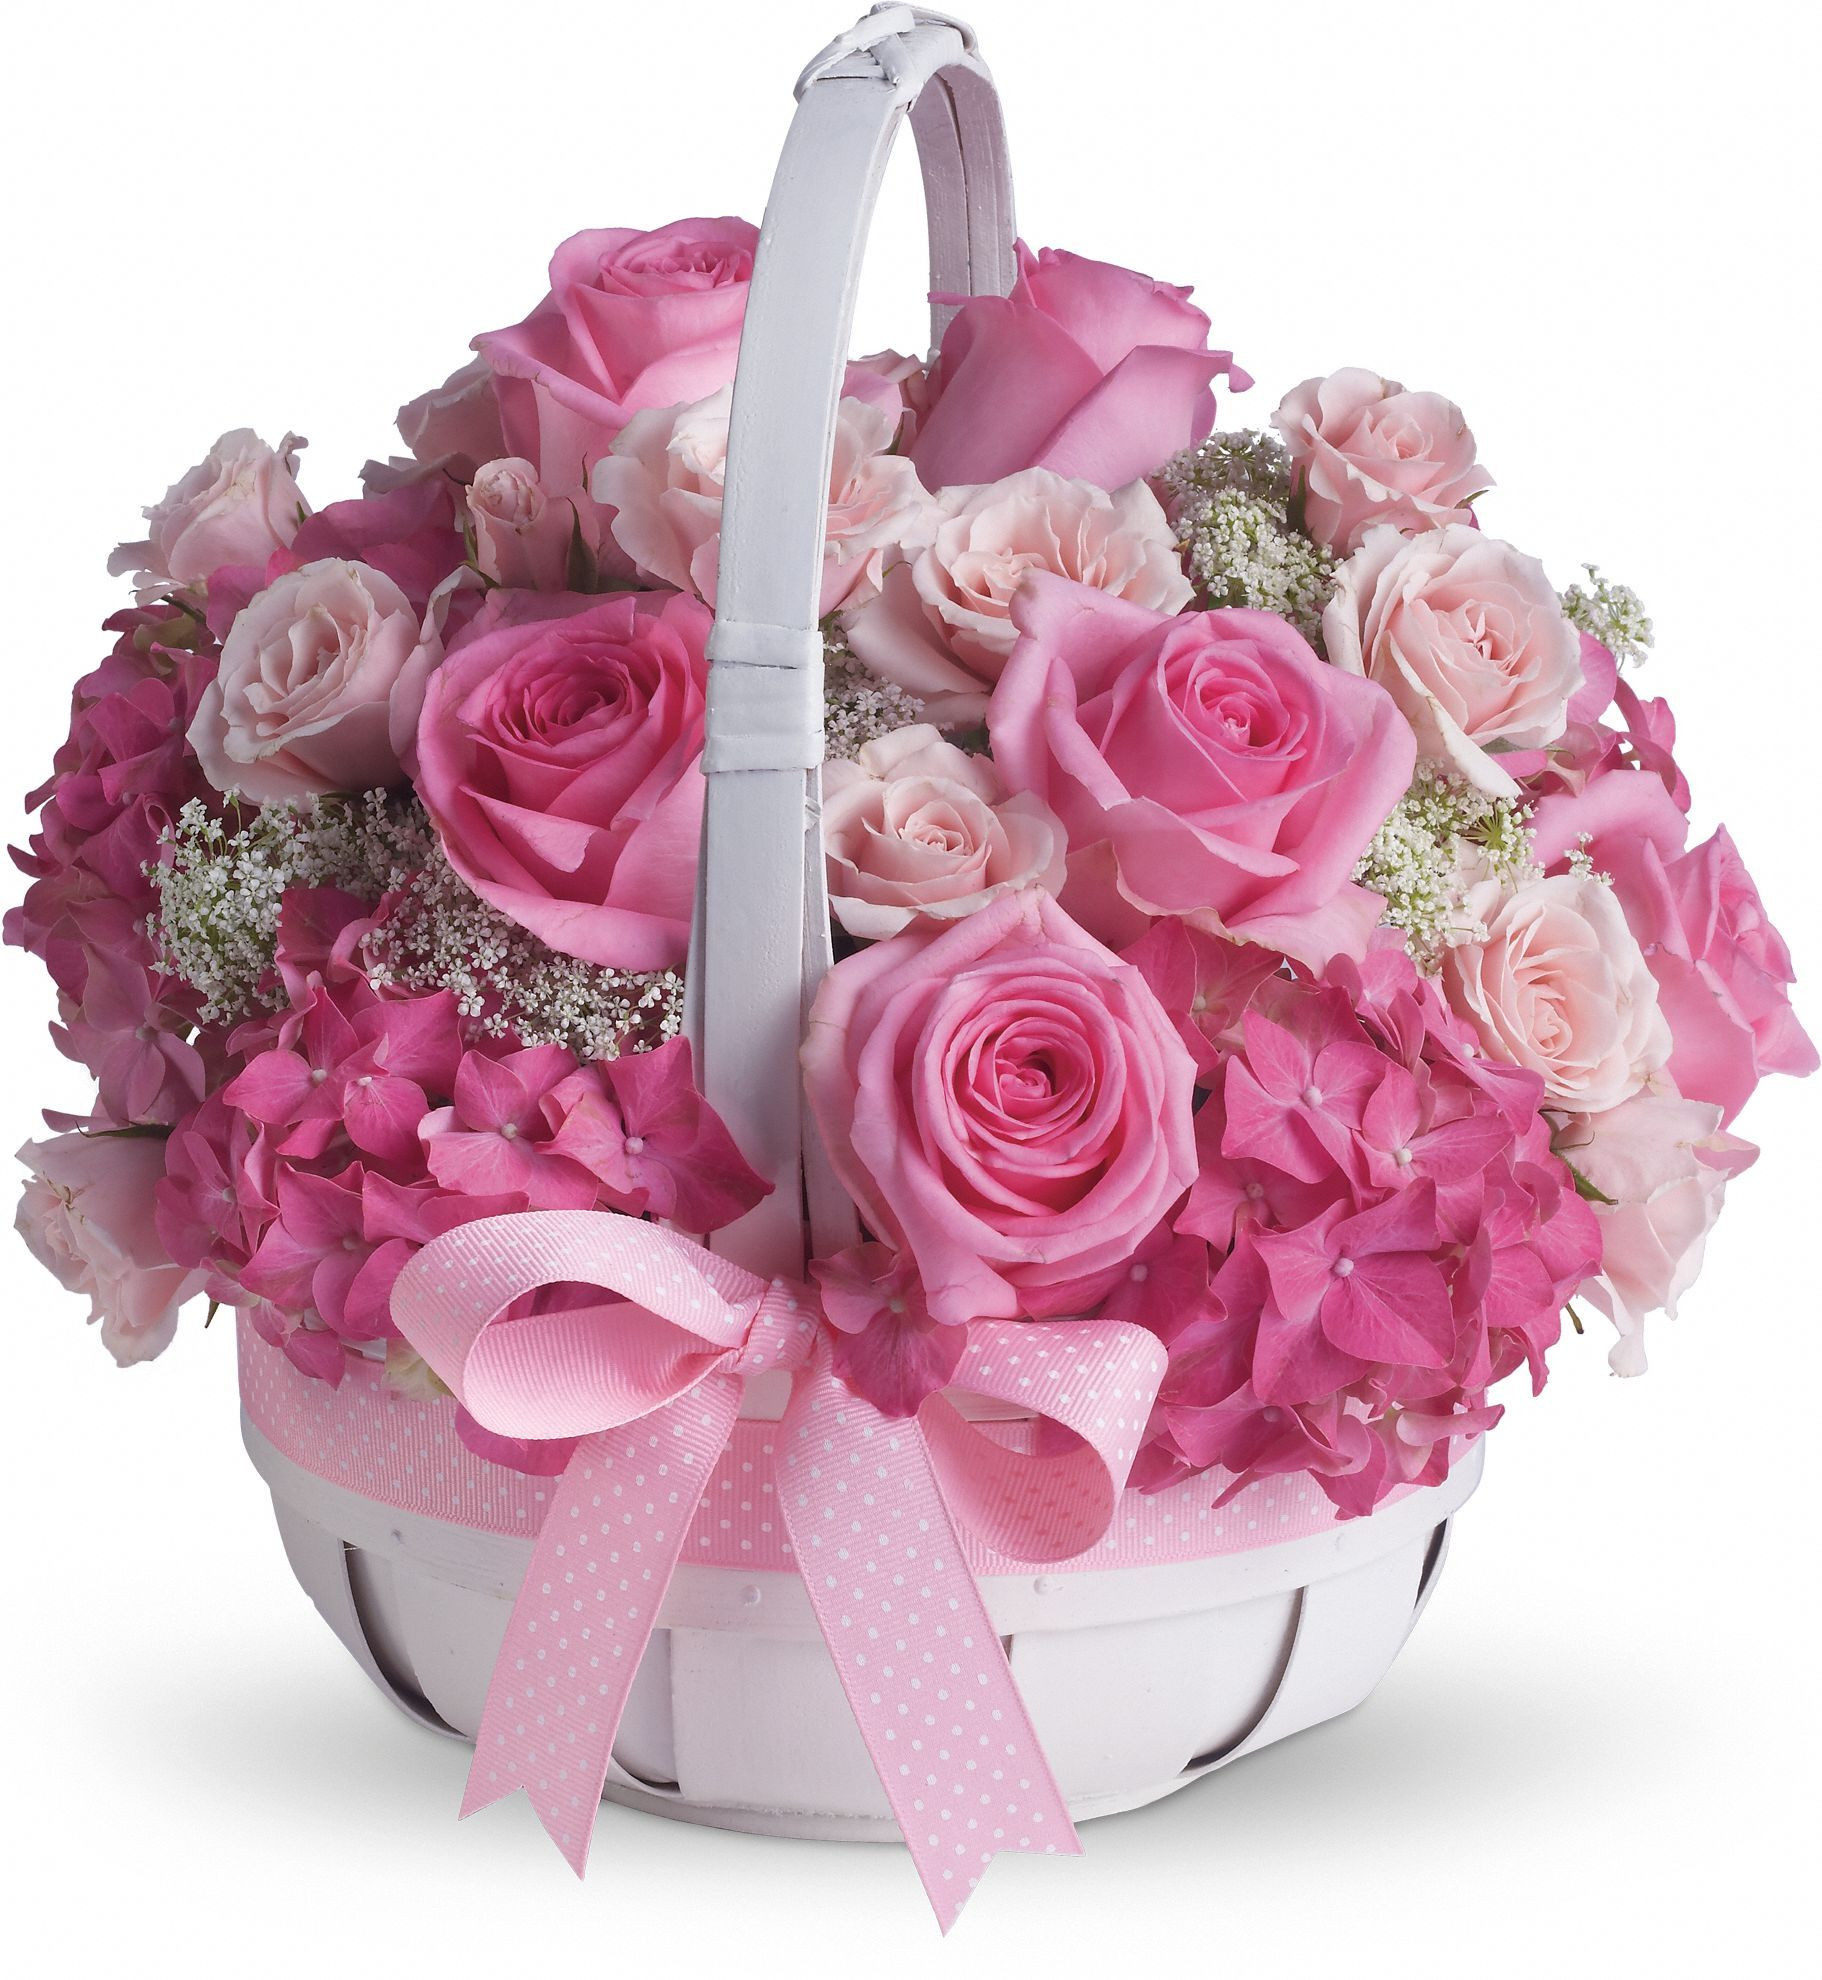 She s Lovely Save on this bouquet and many others with coupon code TFMDAYOK1B2 fer expires 05 14 2012